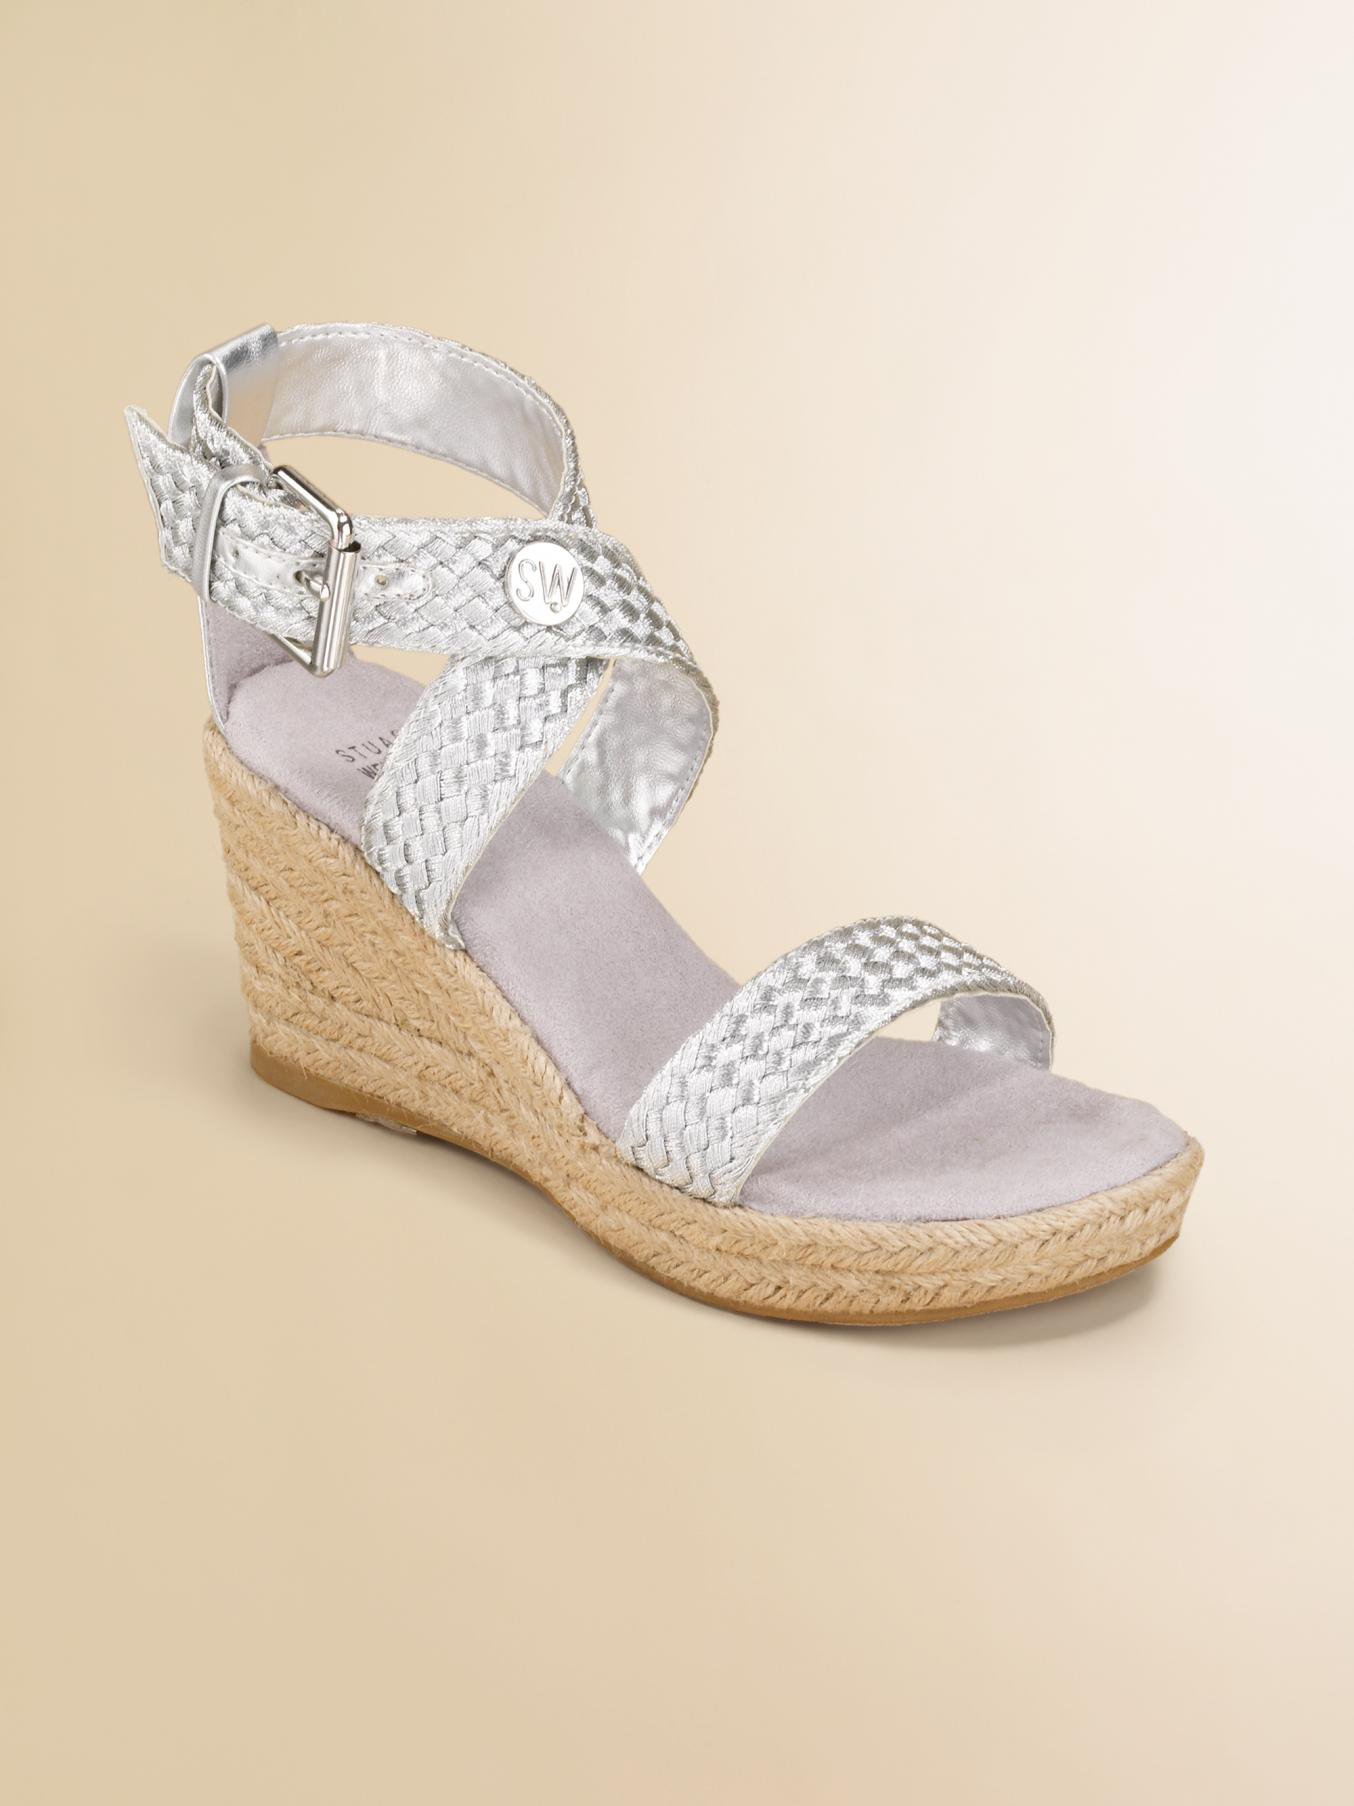 Nada Mobile App >> Stuart weitzman Girls Braided Wedge Sandals in Metallic | Lyst